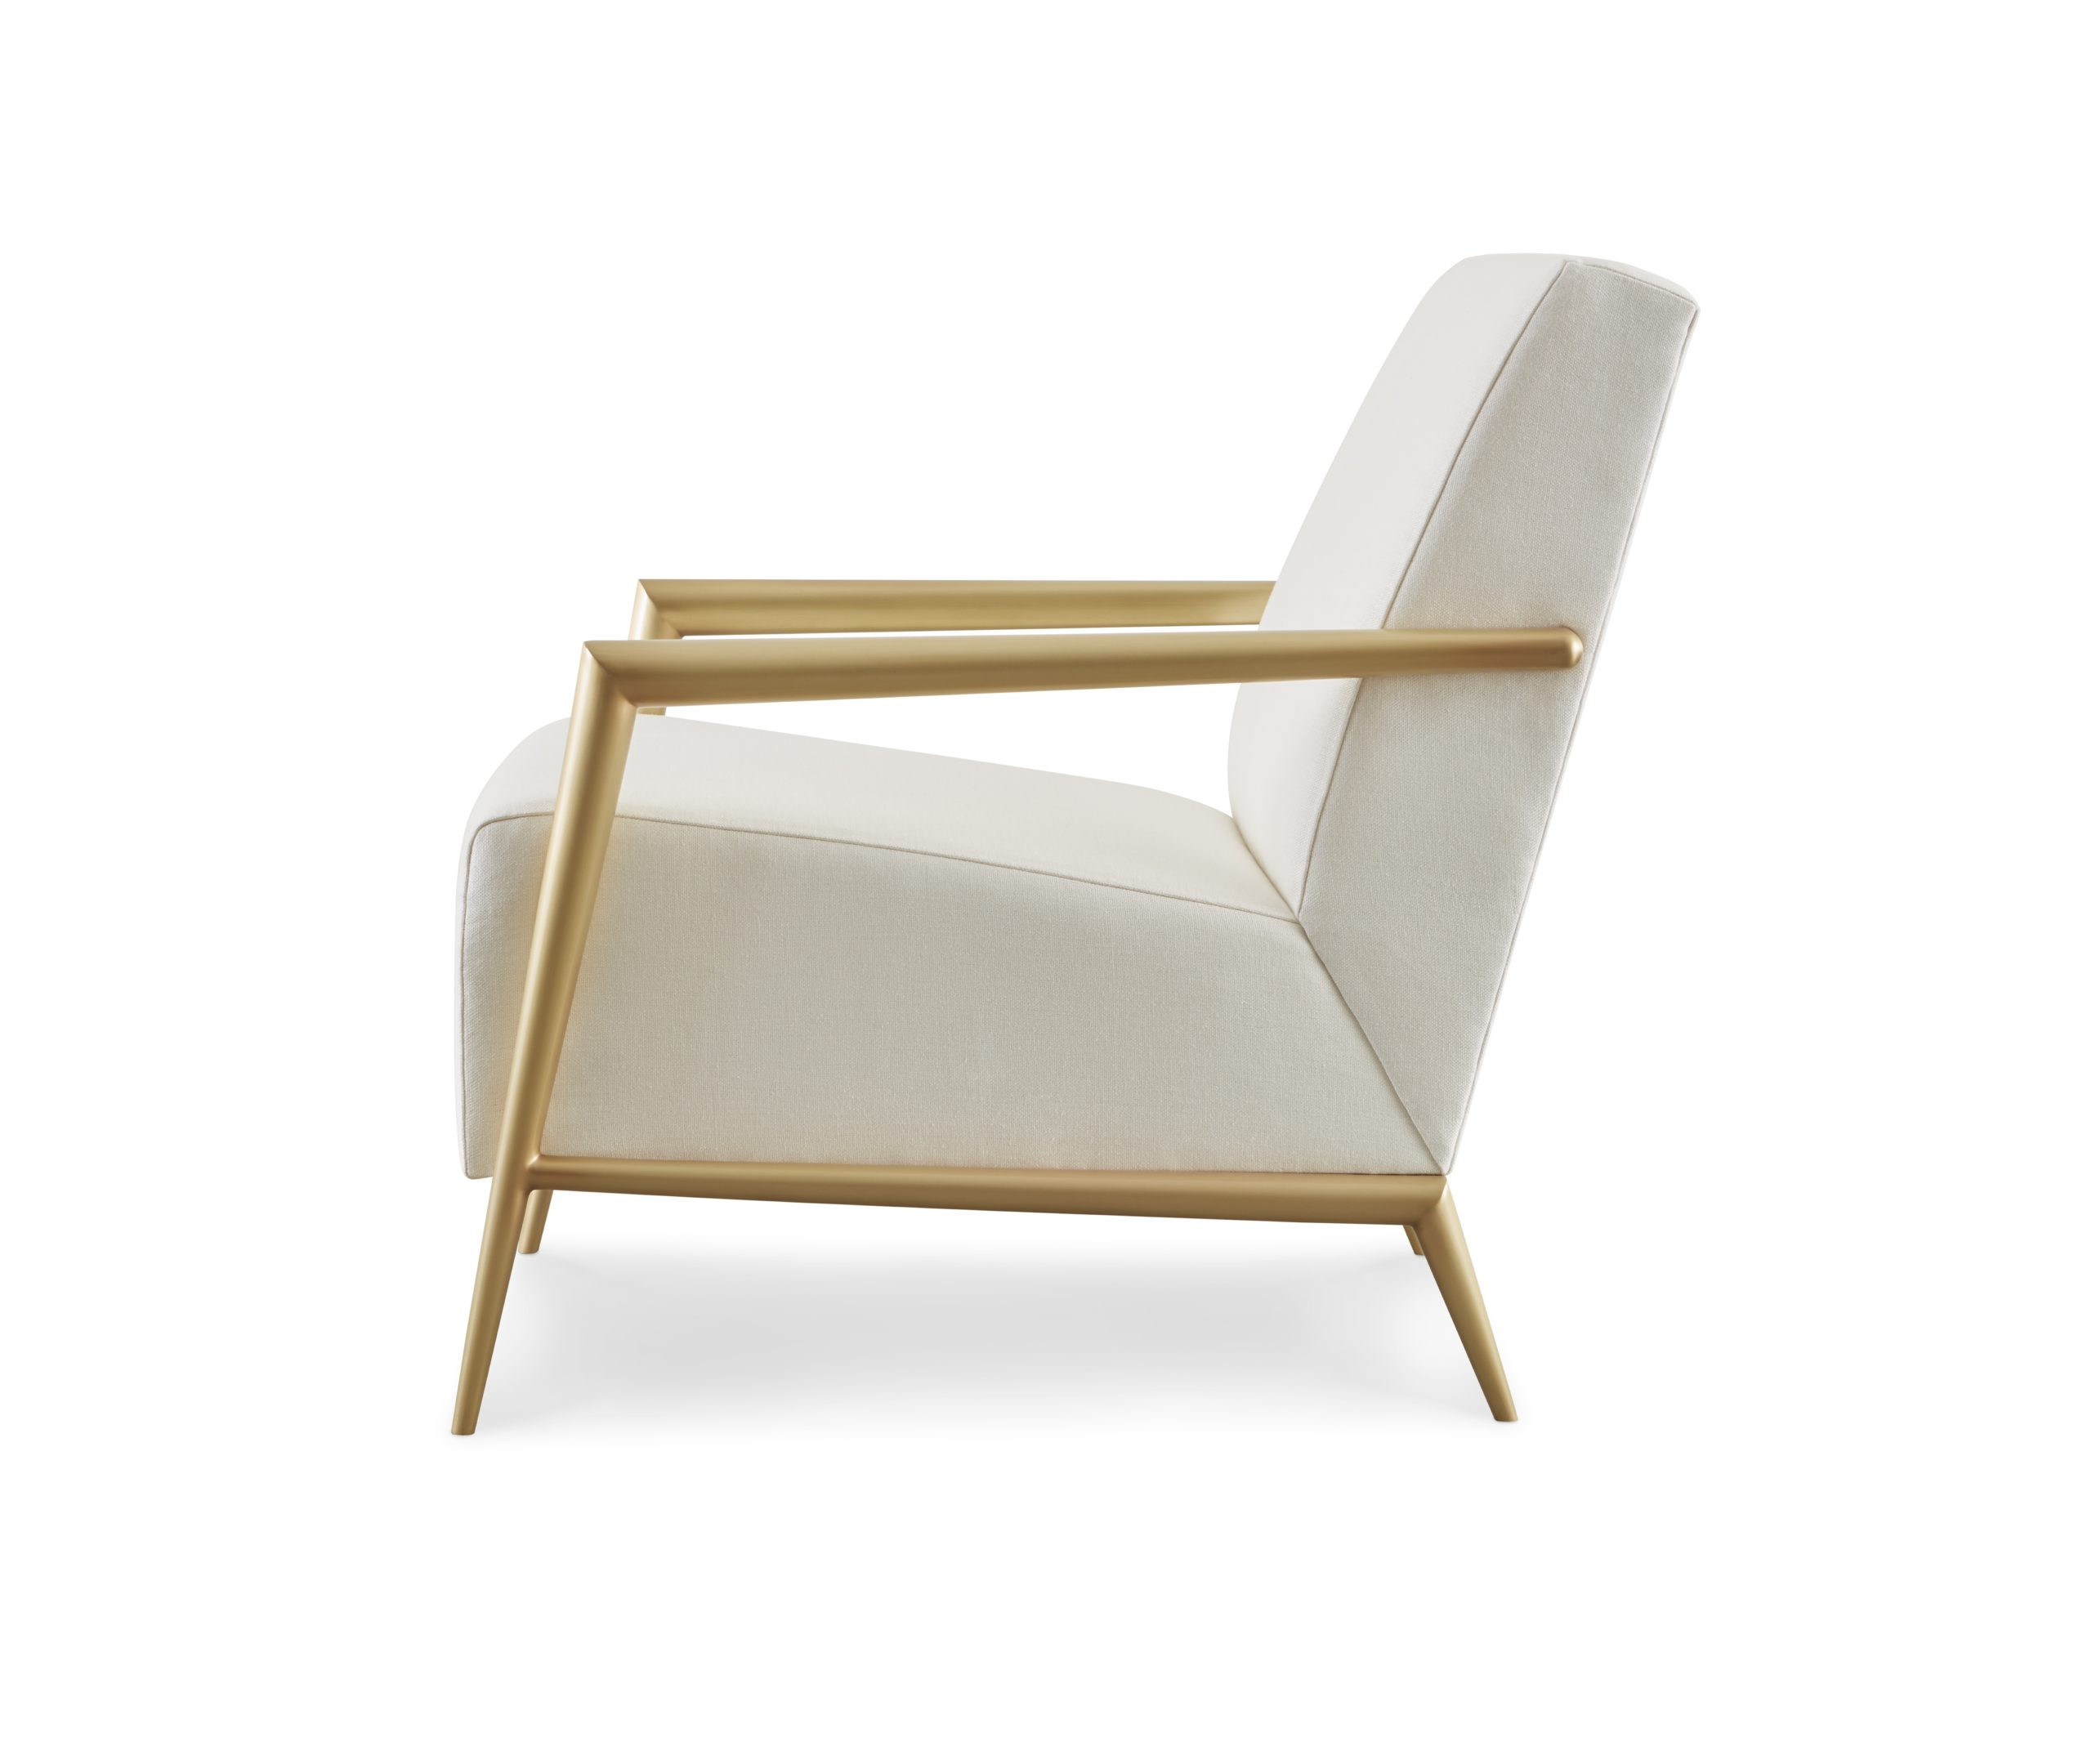 Baker_products_WNWN_enzo_lounge_chair_BAU3104c_SIDE-scaled-2